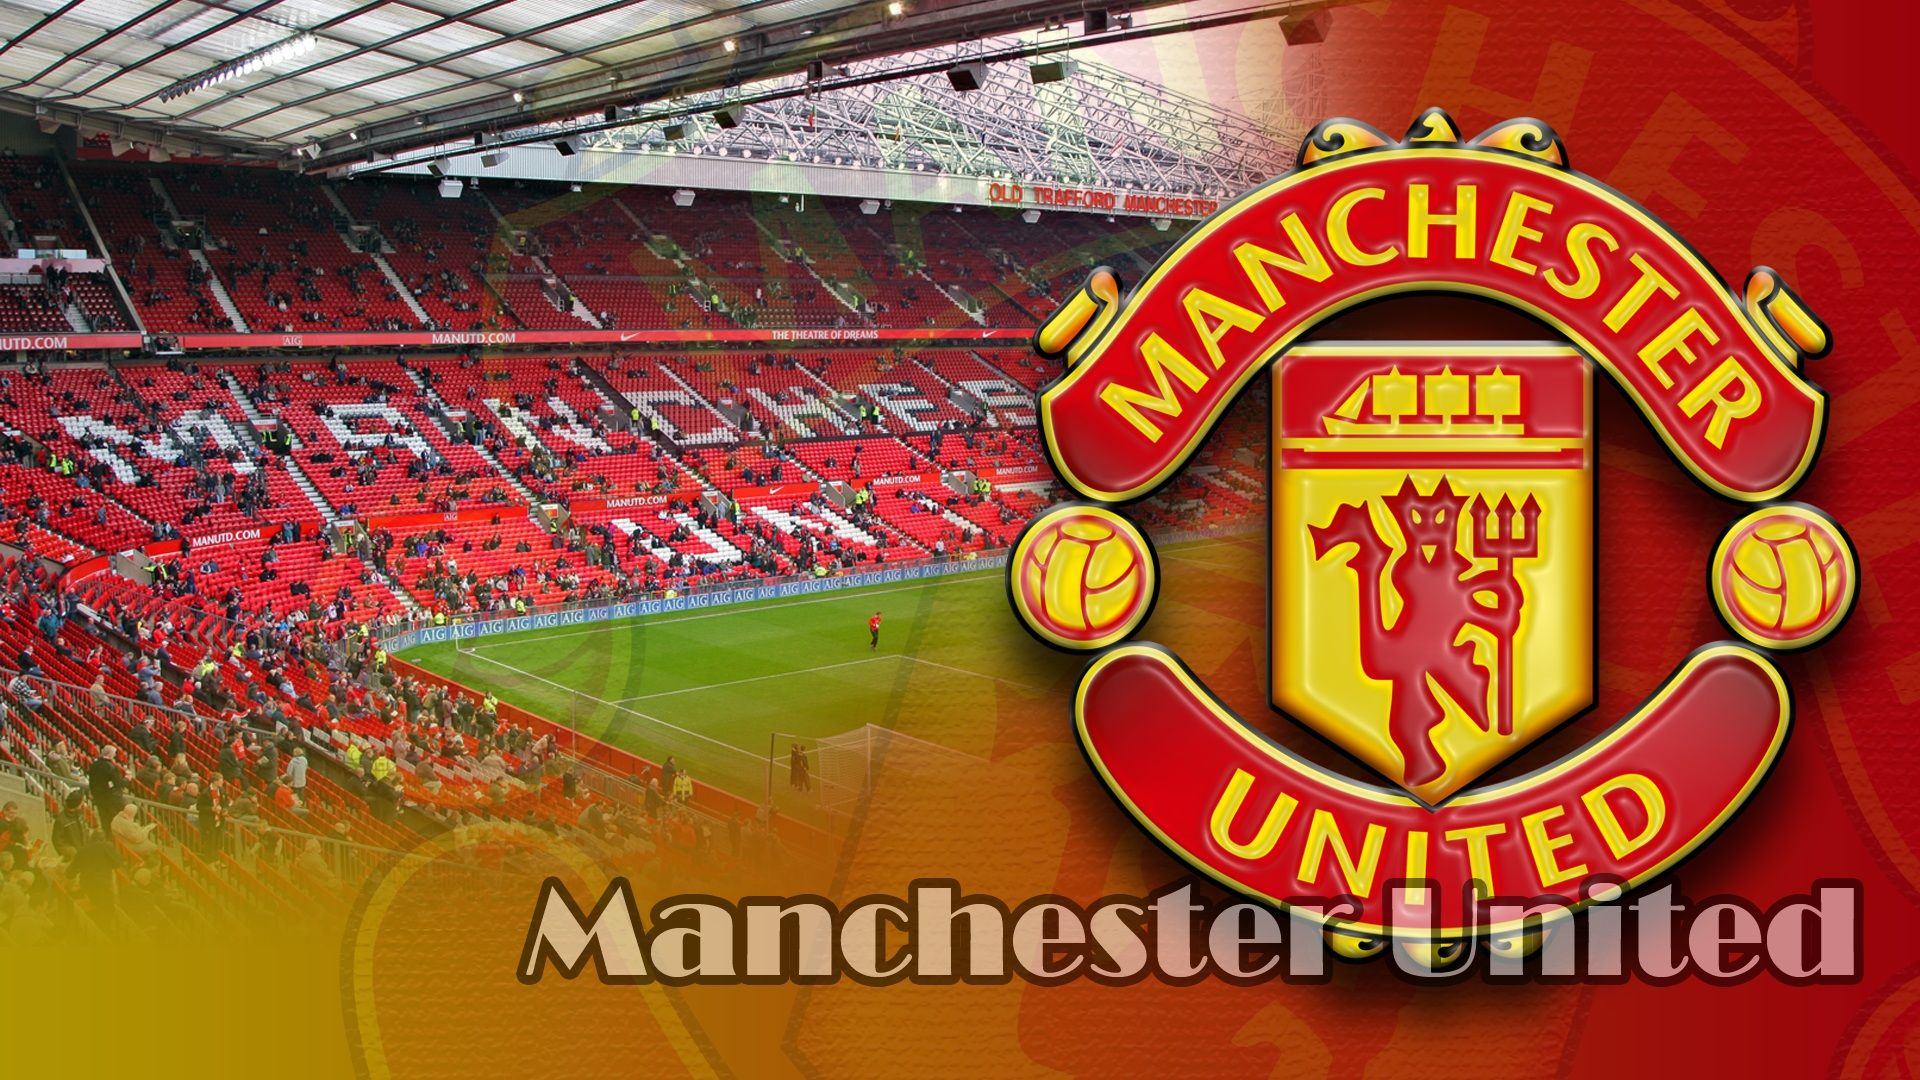 Download Mobile Wallpaper Sports Logos Football Manchester